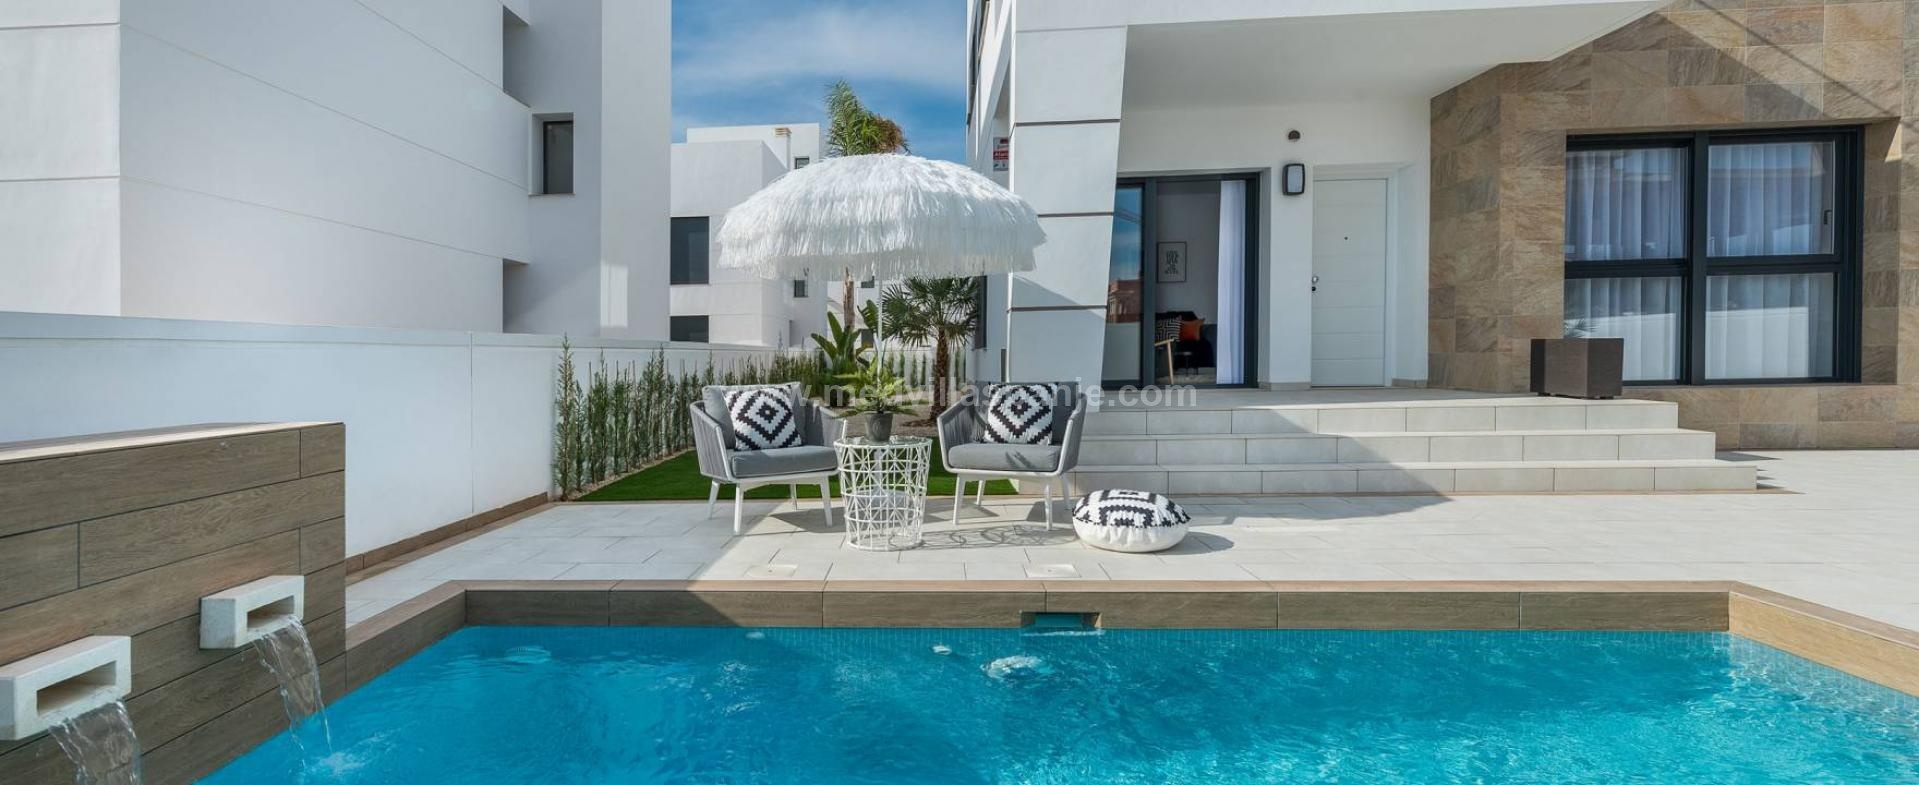 Modern villa on the Costa Blanca South, Spain in Medvilla Spanje